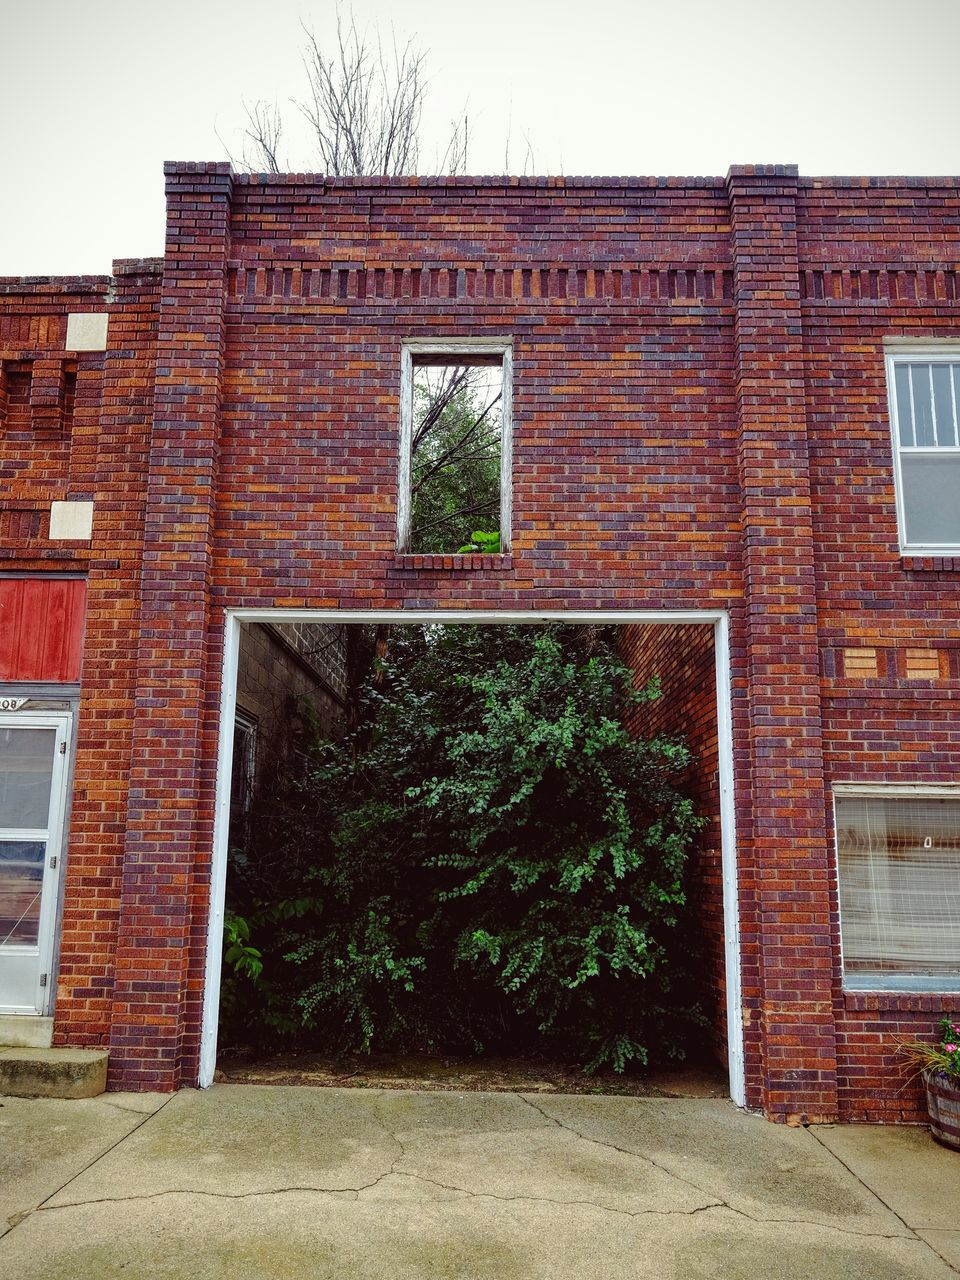 architecture, building exterior, built structure, window, outdoors, brick wall, no people, day, tree, sky